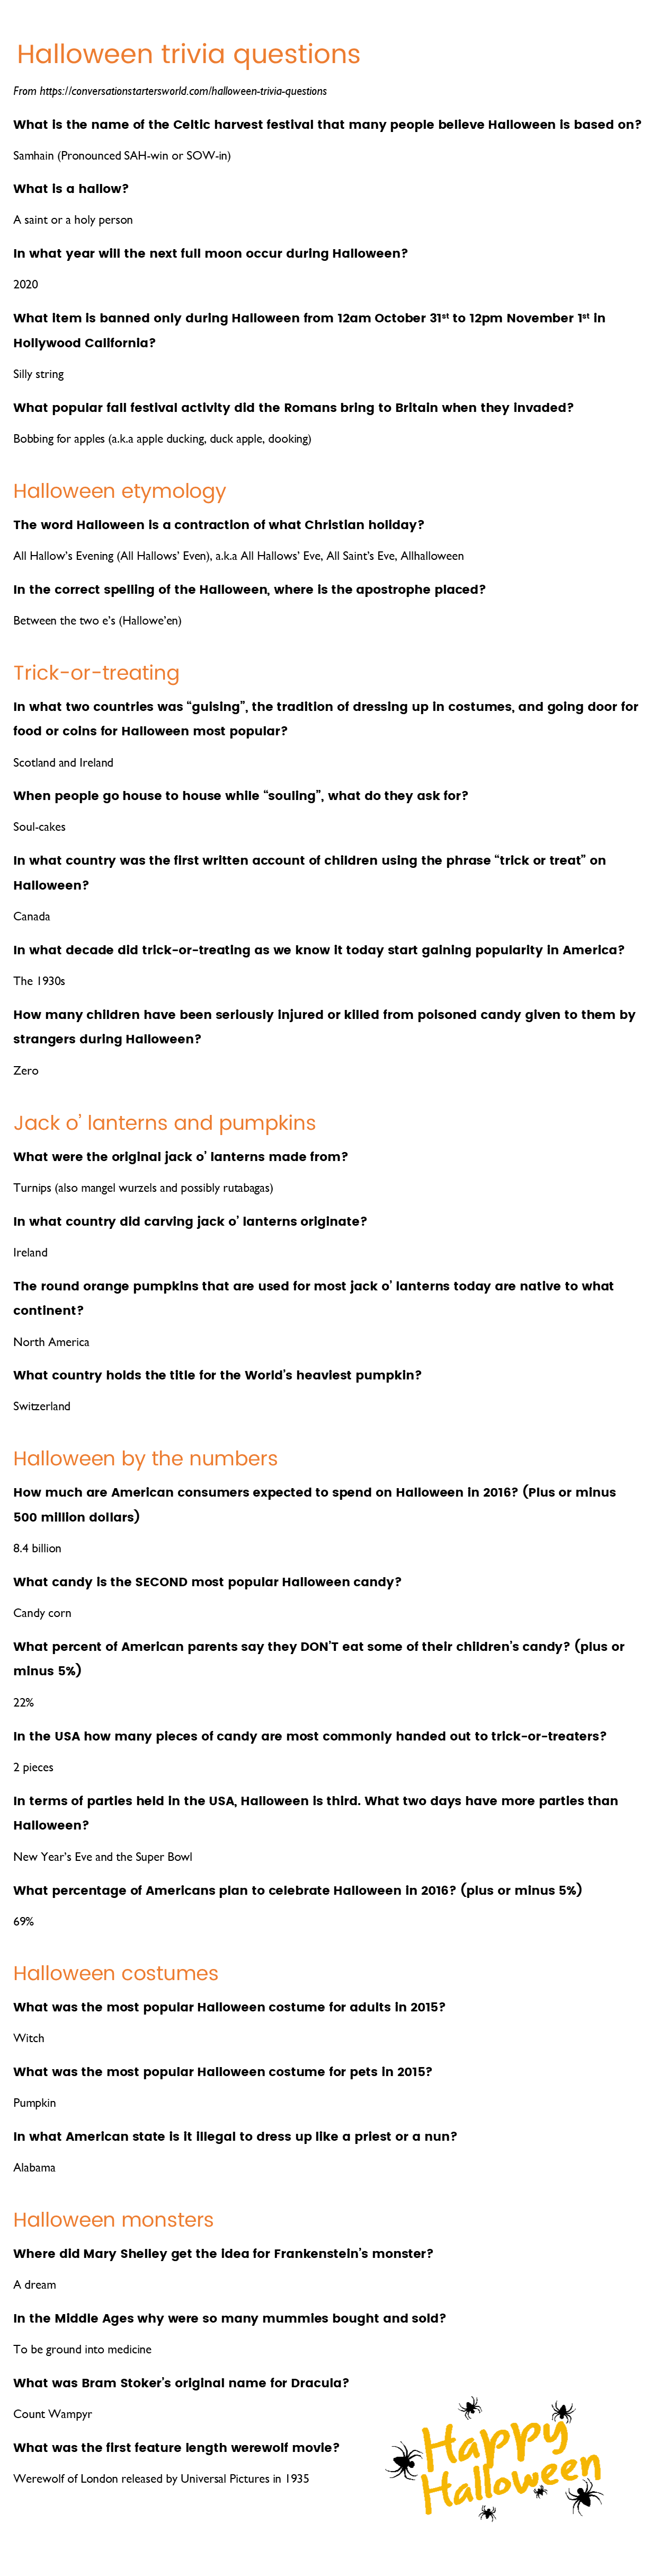 halloween trivia questions and answers list - Halloween Trivia With Answers